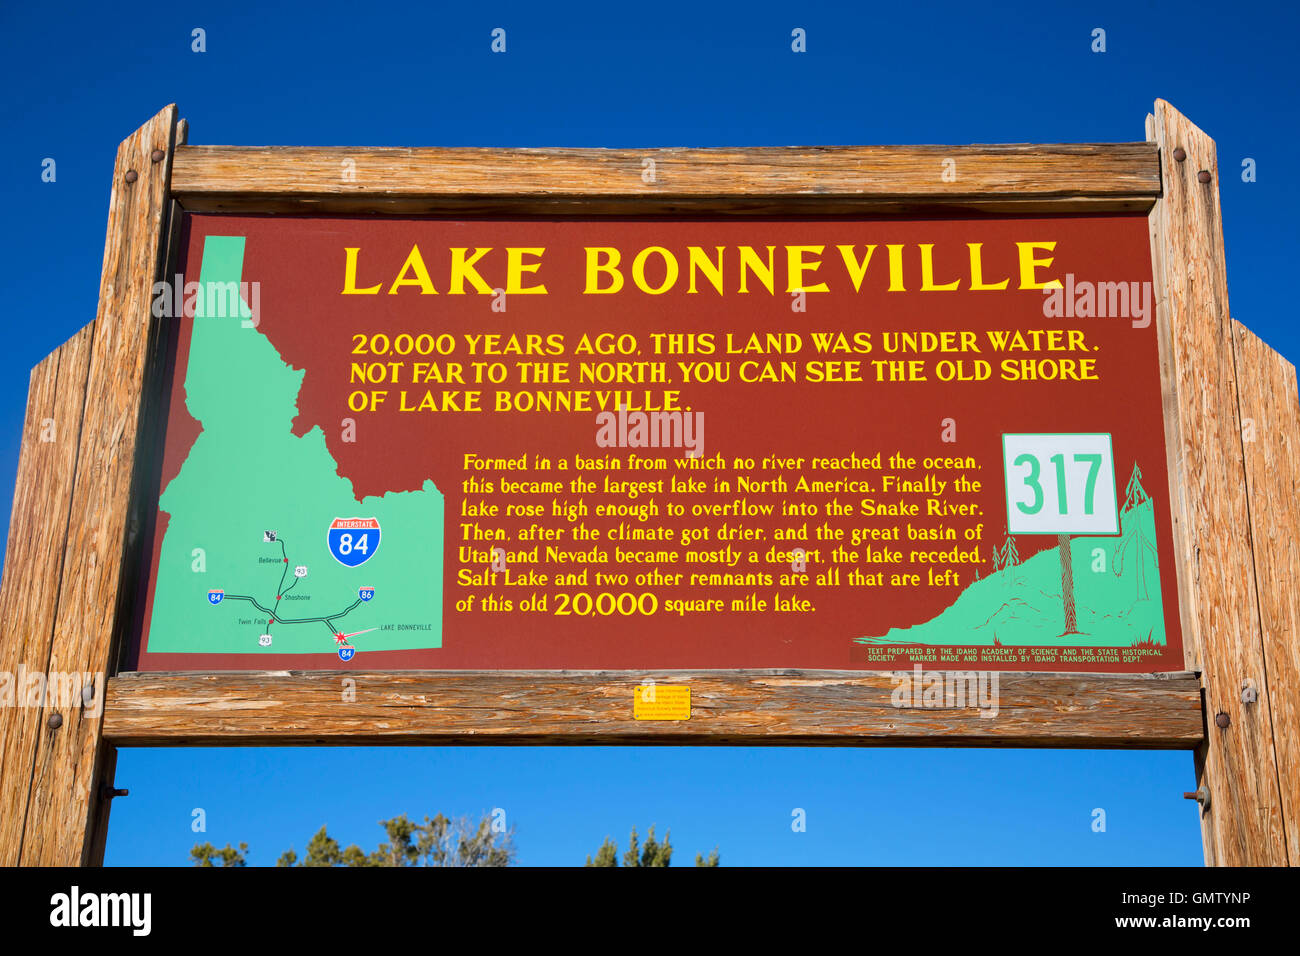 Lake Bonneville Historical sign, Oneida County, Idaho Stock Photo